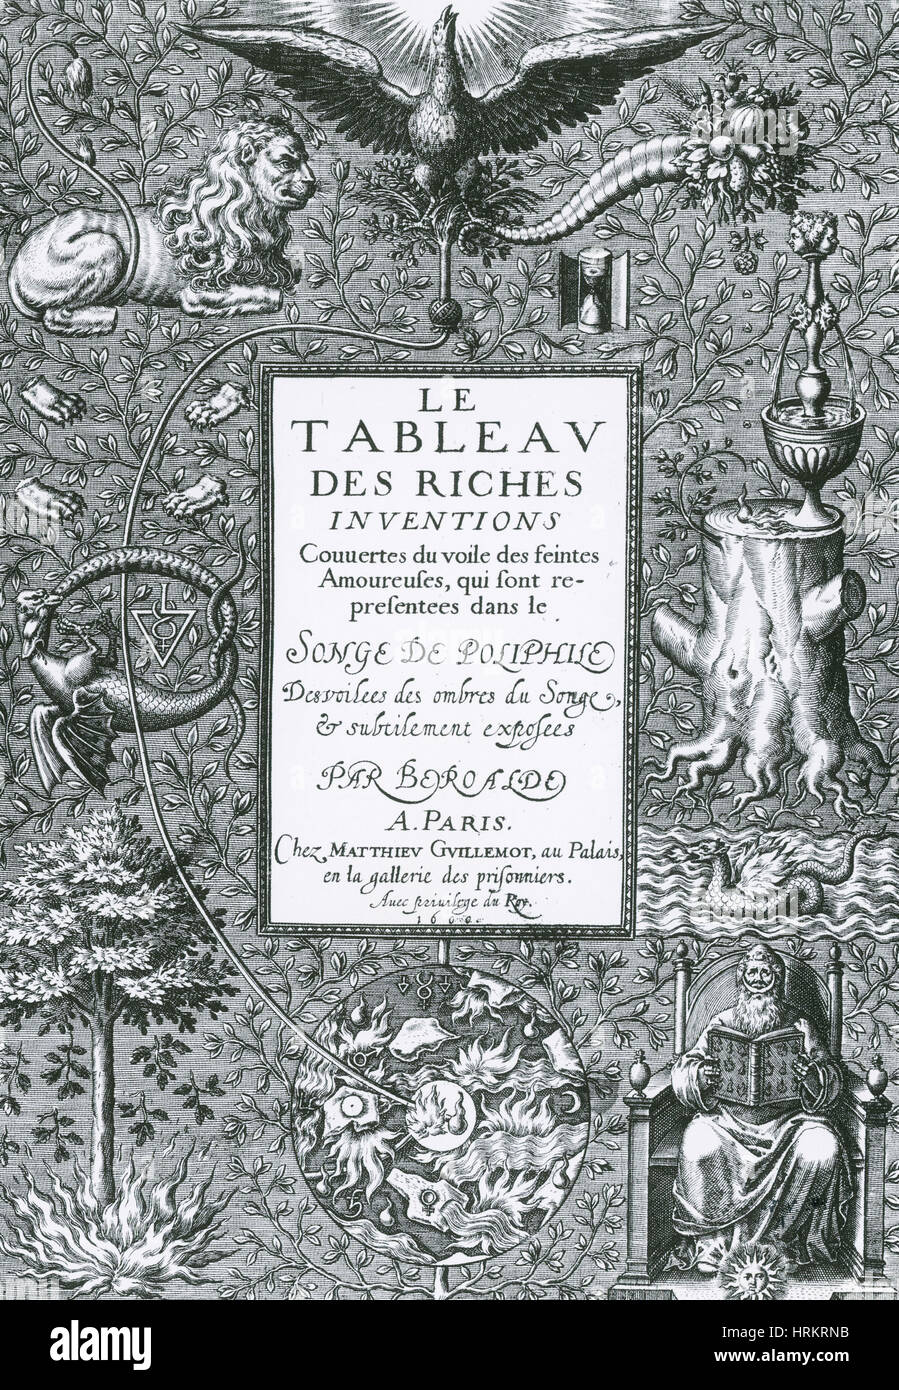 Frontispiece of Alchemical Treatise - Stock Image